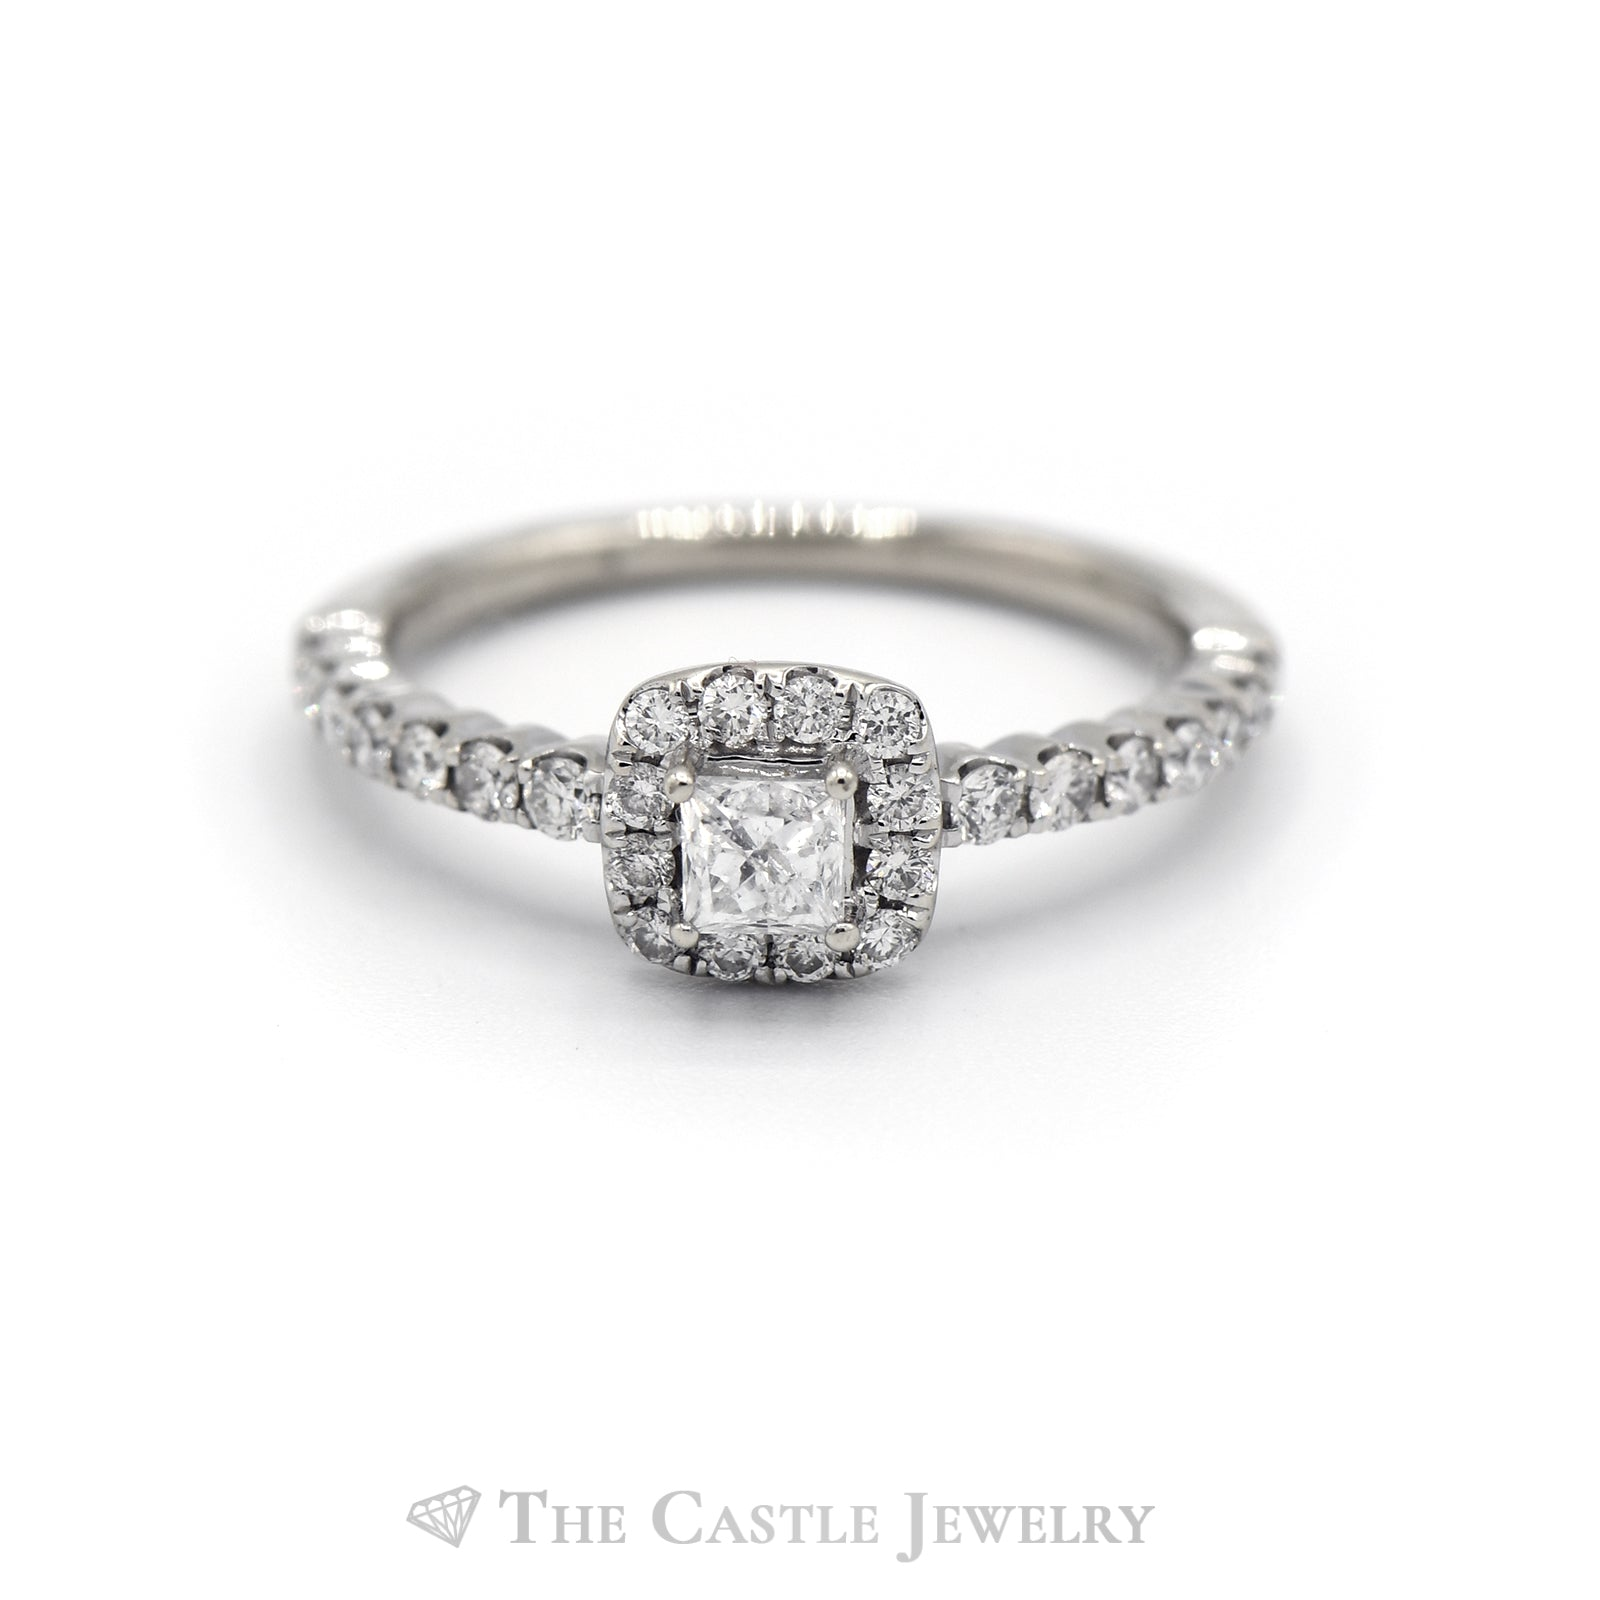 1/2 Carat Princess Cut Engagement Ring with Diamond Halo in 14KT White Gold